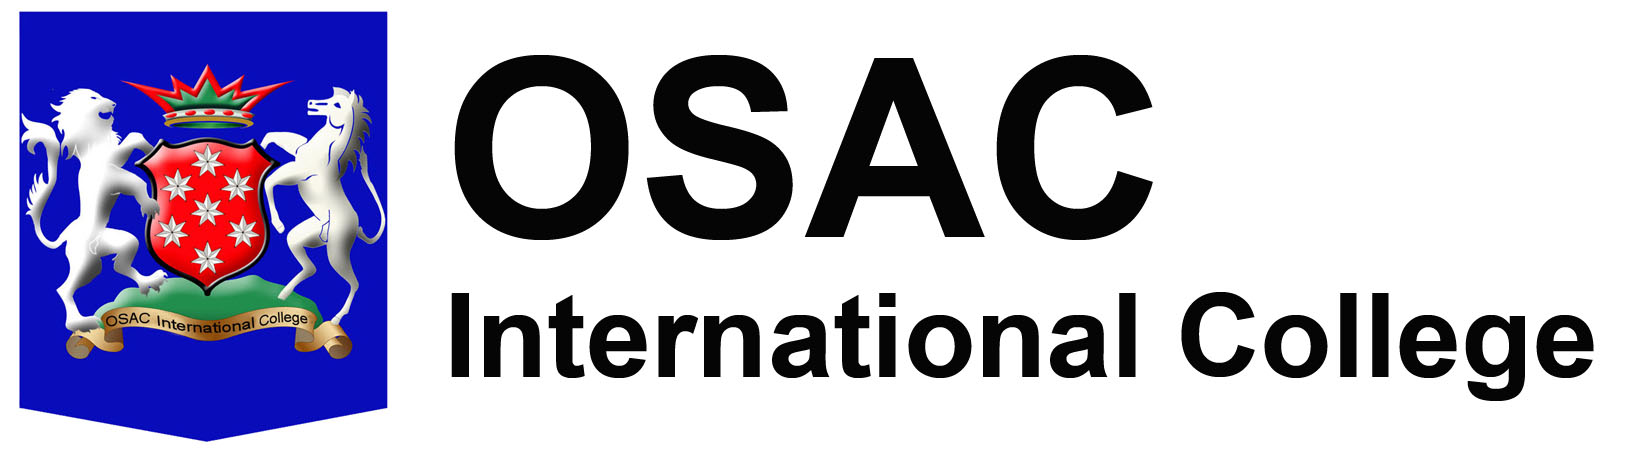 OSAC International College